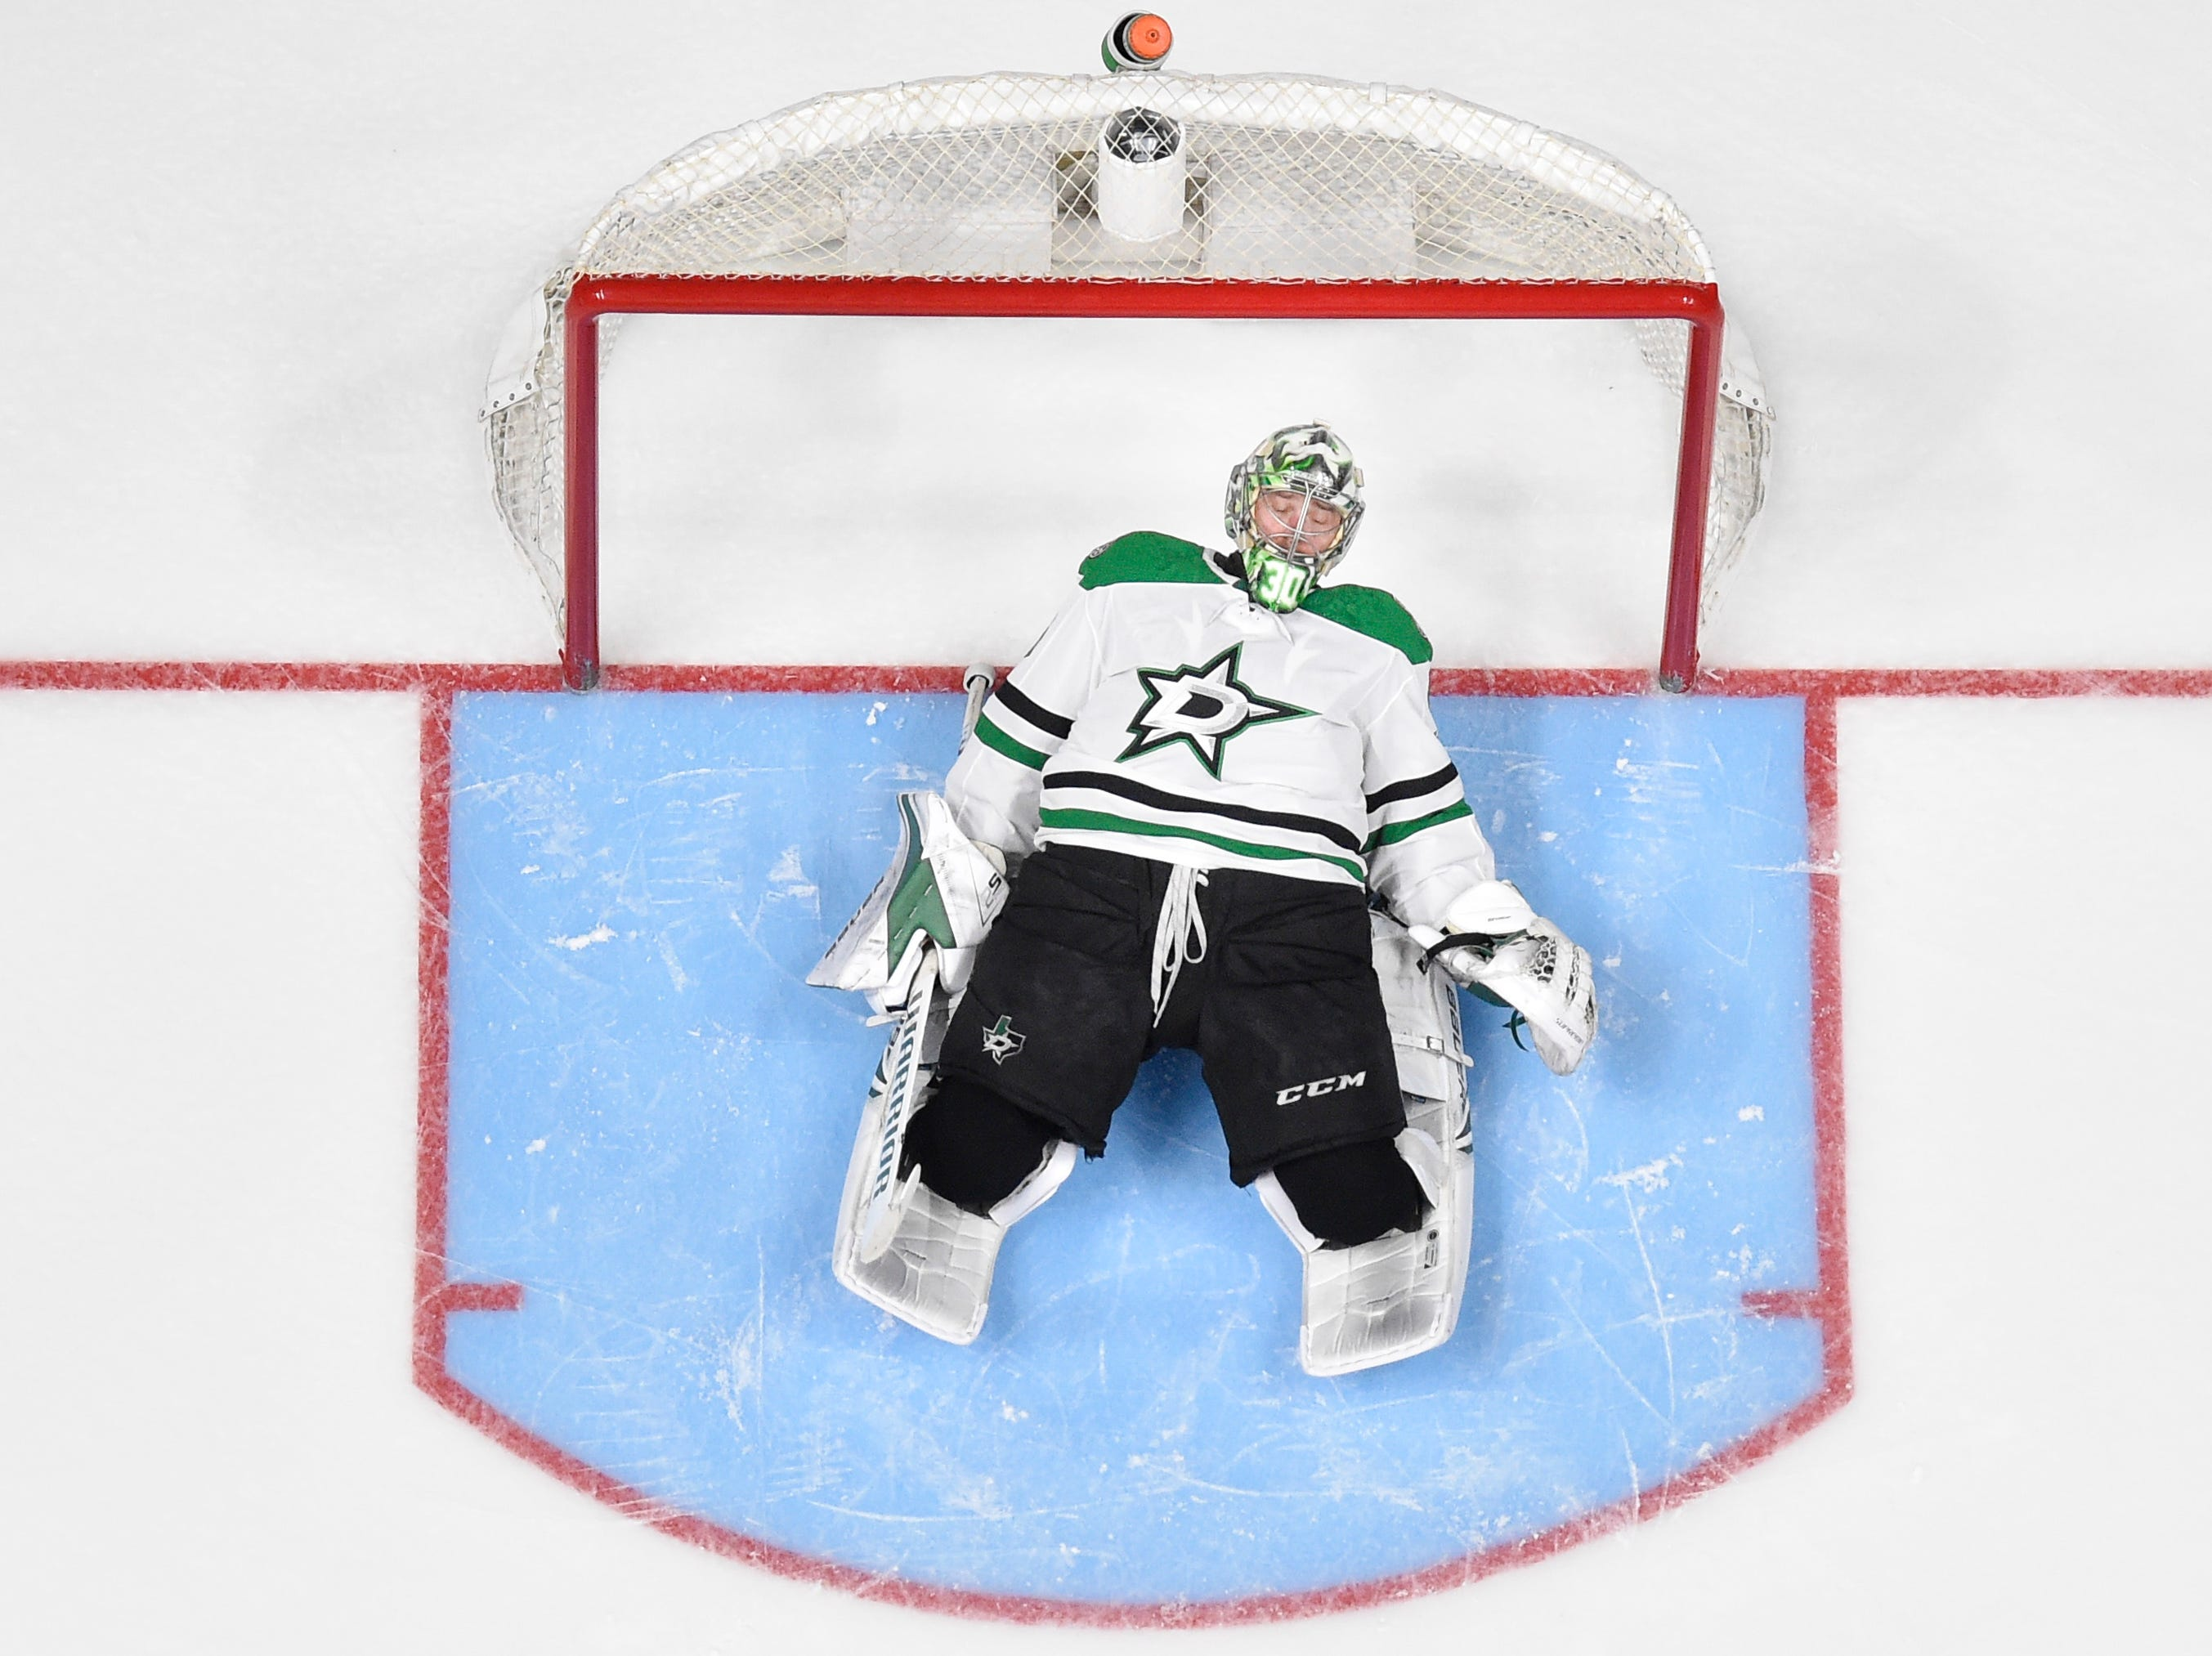 Dallas Stars goaltender Ben Bishop (30) stretches before the second period against the Nashville Predators of the divisional semifinal game at Bridgestone Arena in Nashville, Tenn., Wednesday, April 10, 2019.